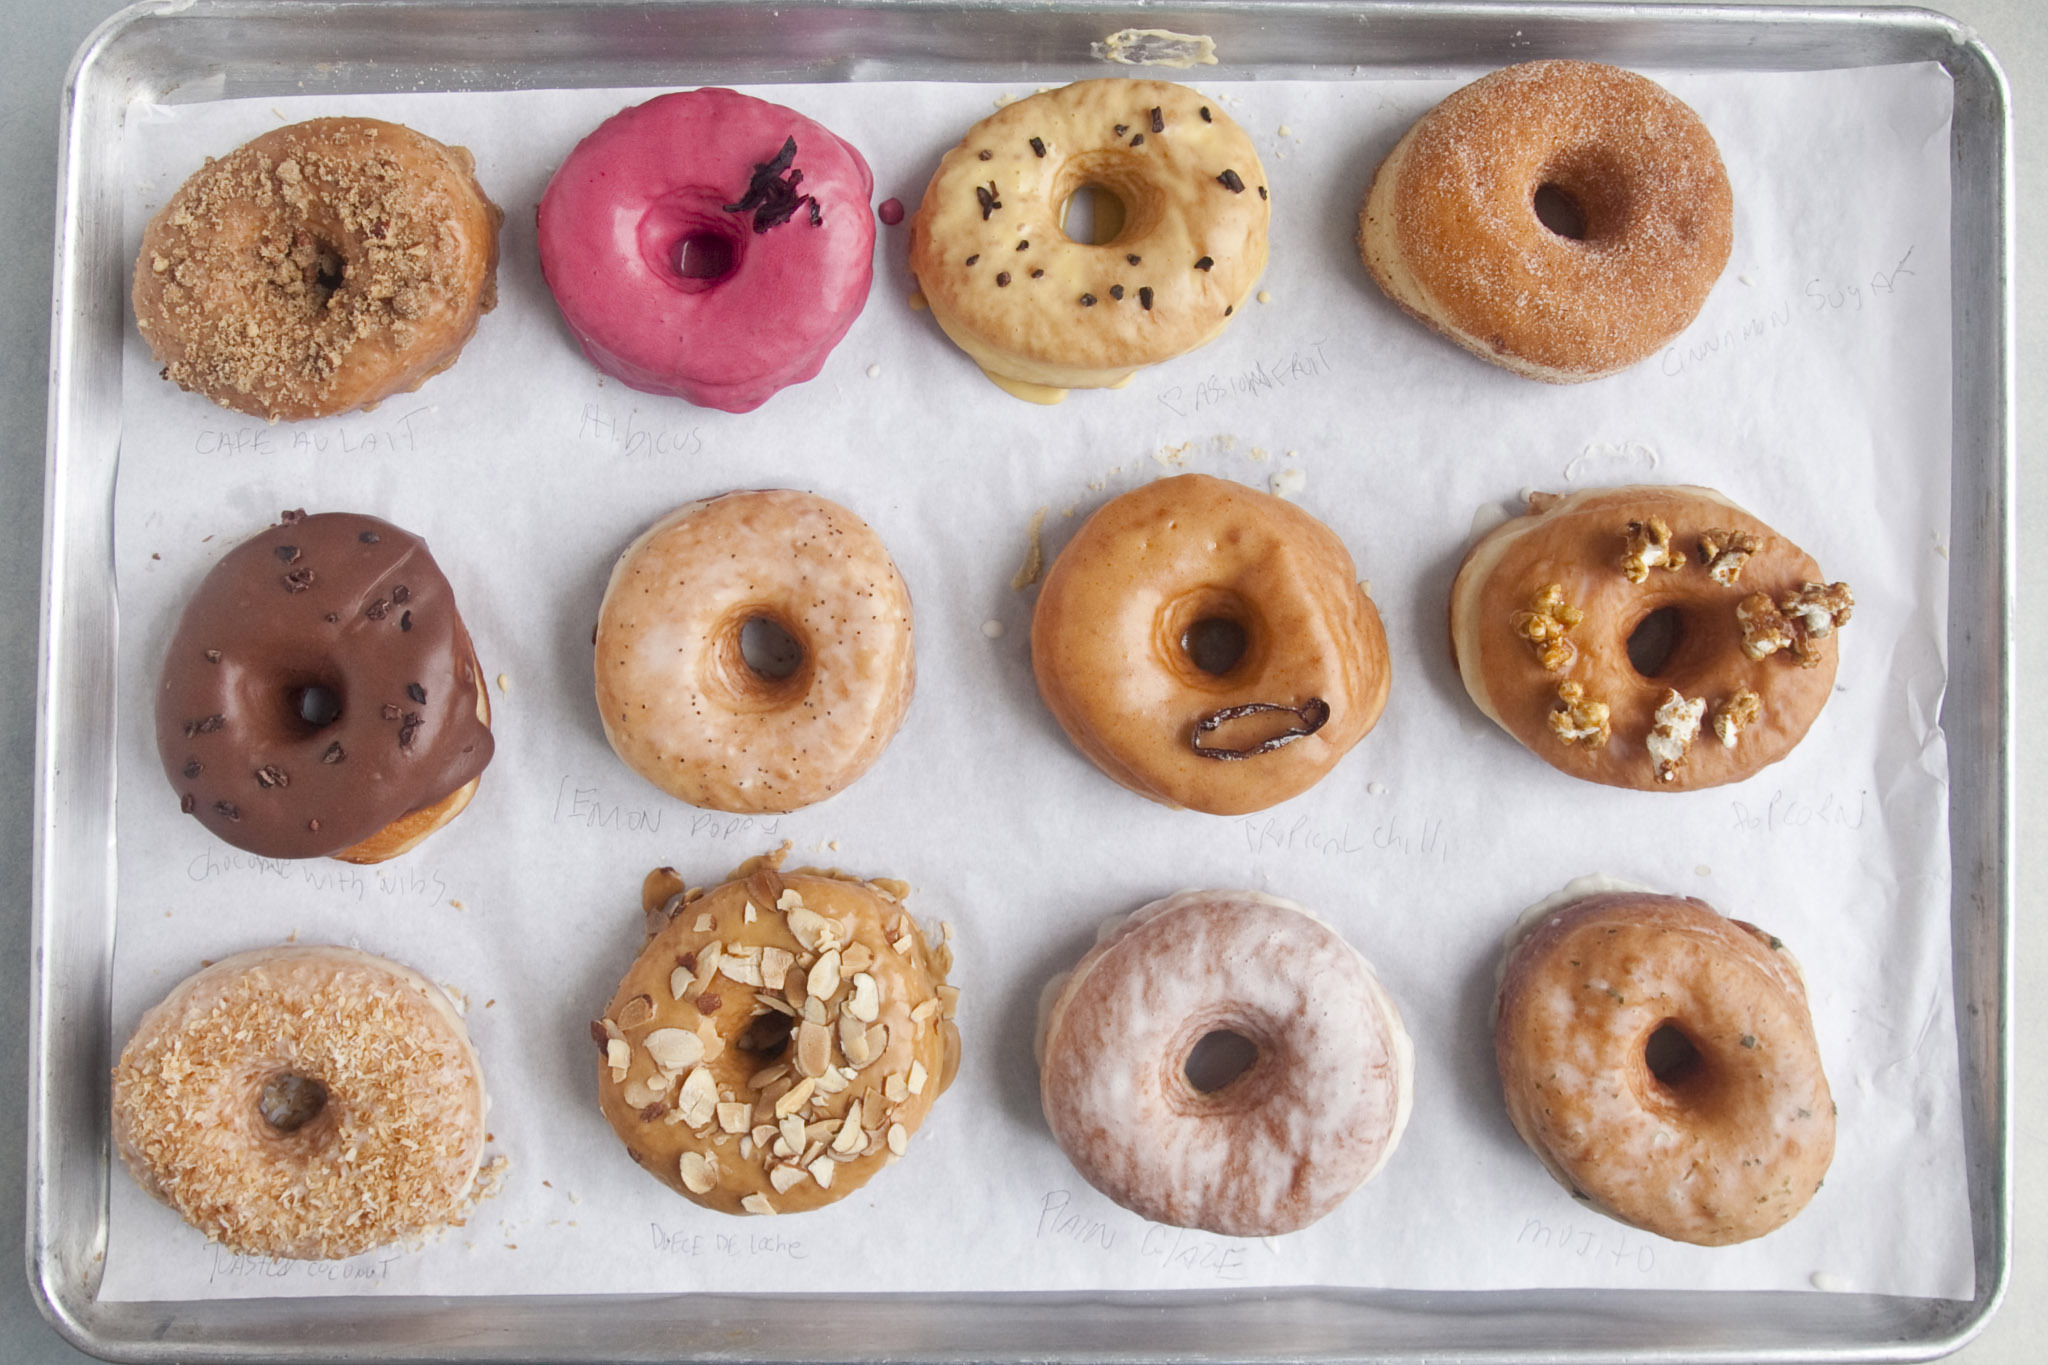 Best doughnut shops for freshness freaks: Dough